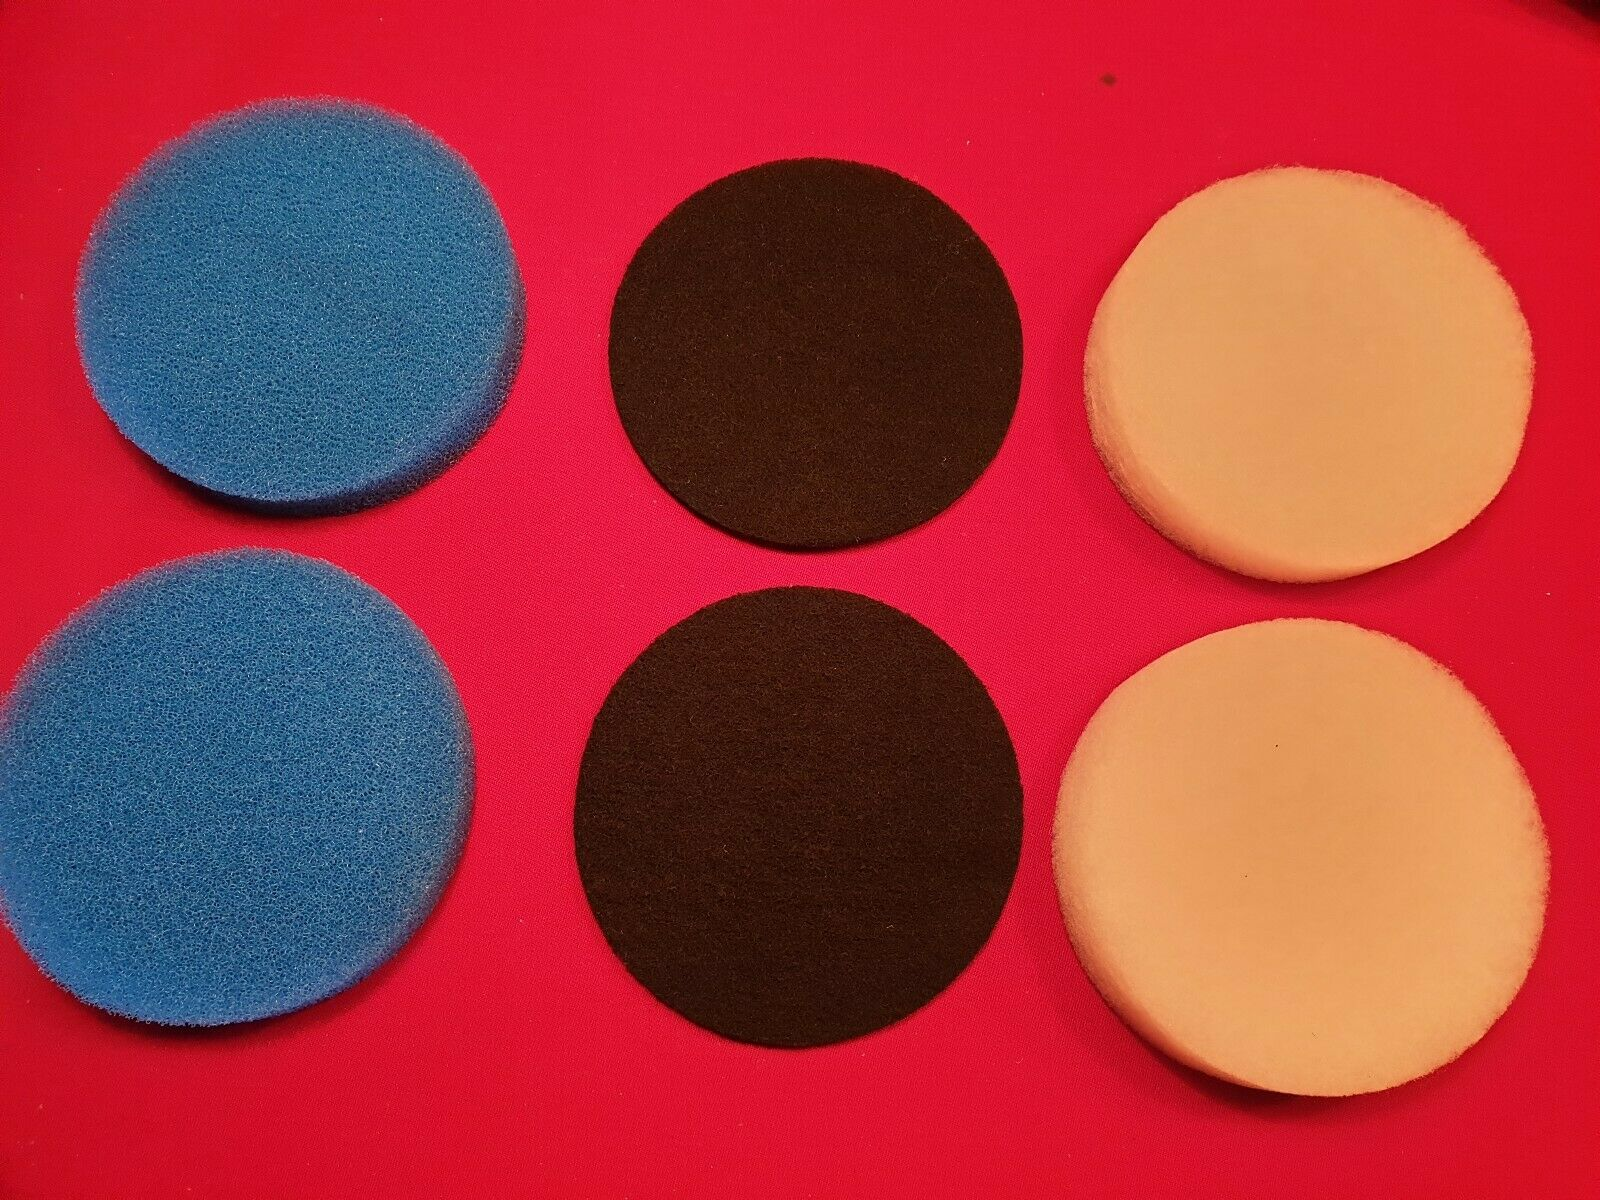 Compatible Eheim 2213 Media Set 6 Pads 2 Blue 2 Carbon & 2 White Polishing Pads